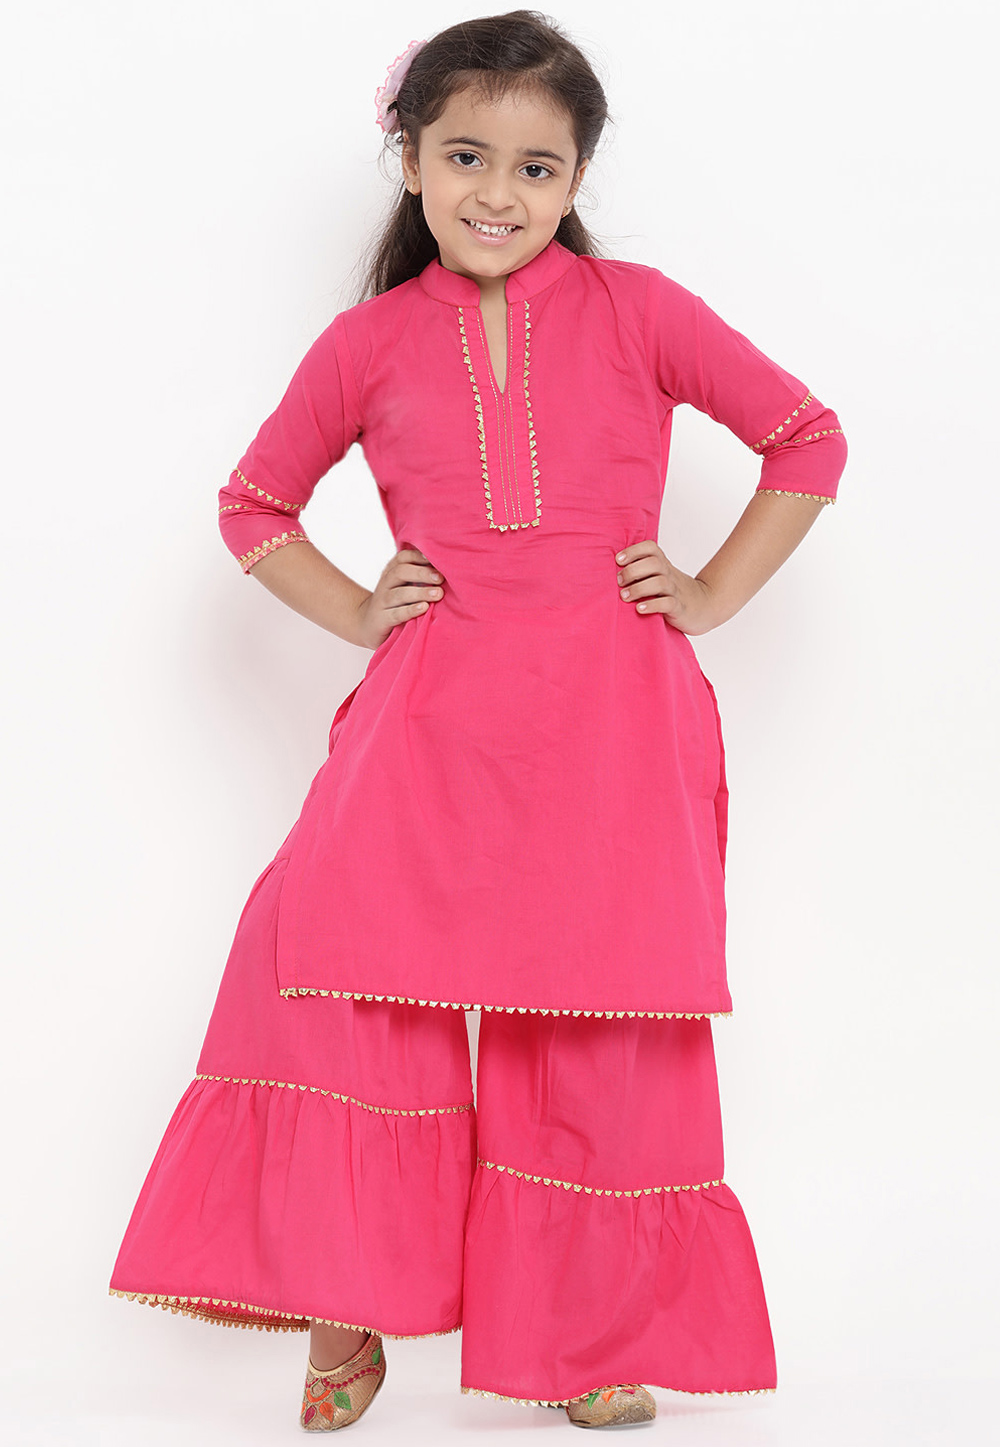 Pink Cotton Readymade Kids Palazzo Suit 202889